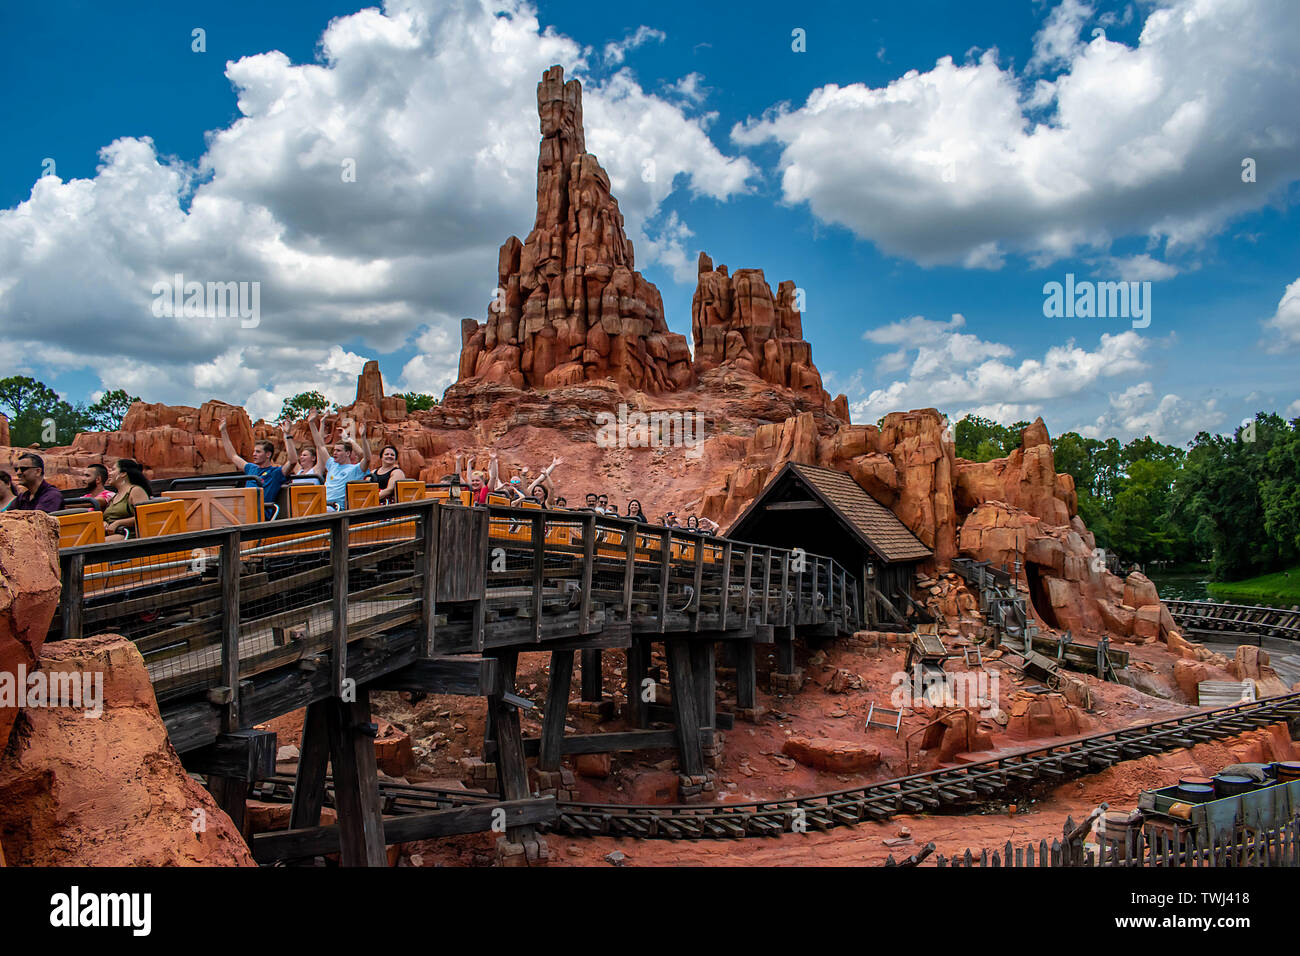 Orlando, Florida. May 10, 2019. People having fun Big Thunder Mountain railroad on cloudy sky background in Magic Kingdom at Walt Disney World - Stock Image